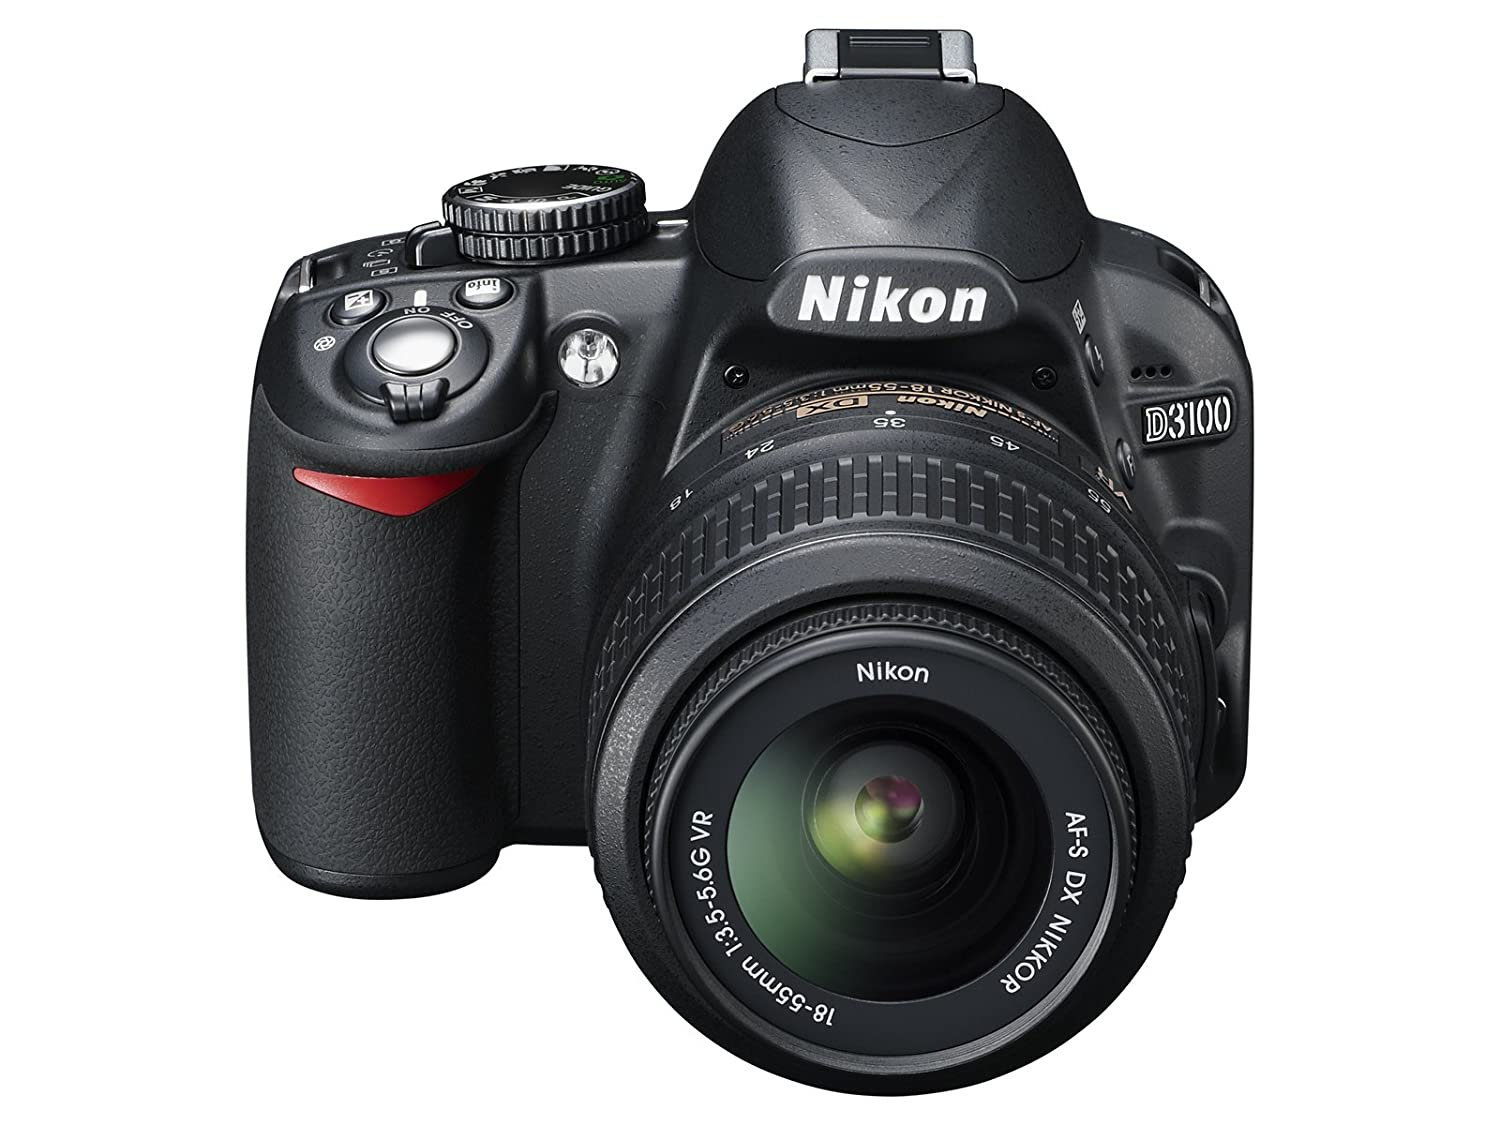 Camera High Megapixel Dslr Camera amazon com nikon d3100 dslr camera with 18 55mm f3 5 6 auto focus s nikkor zoom lens discontinued by manufacturer camera